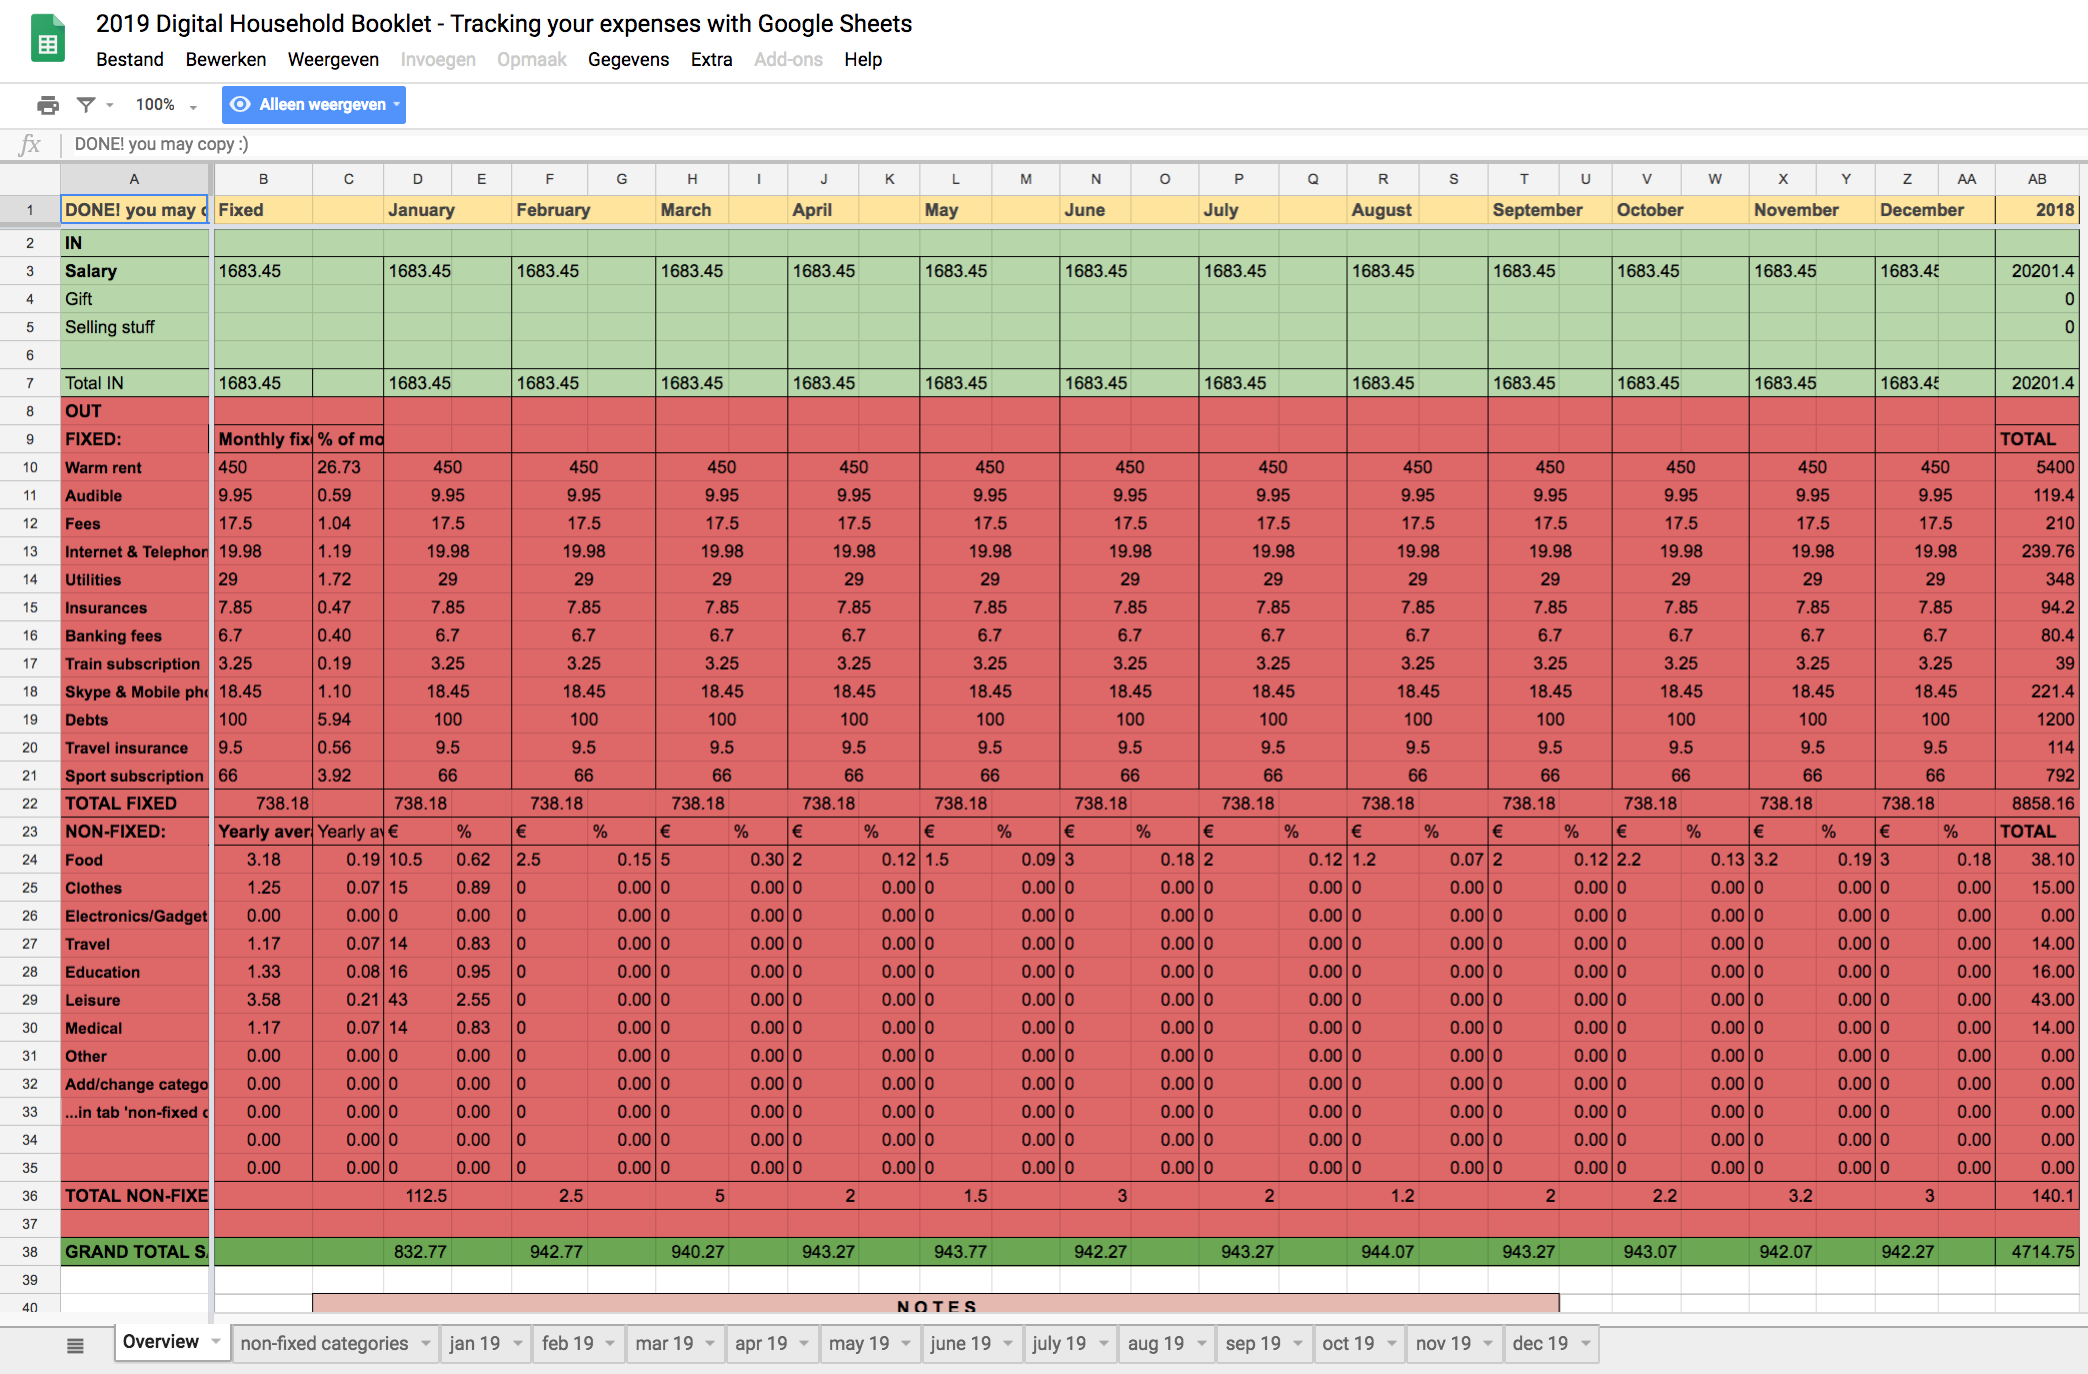 How to easily track your expenses with Google Sheets